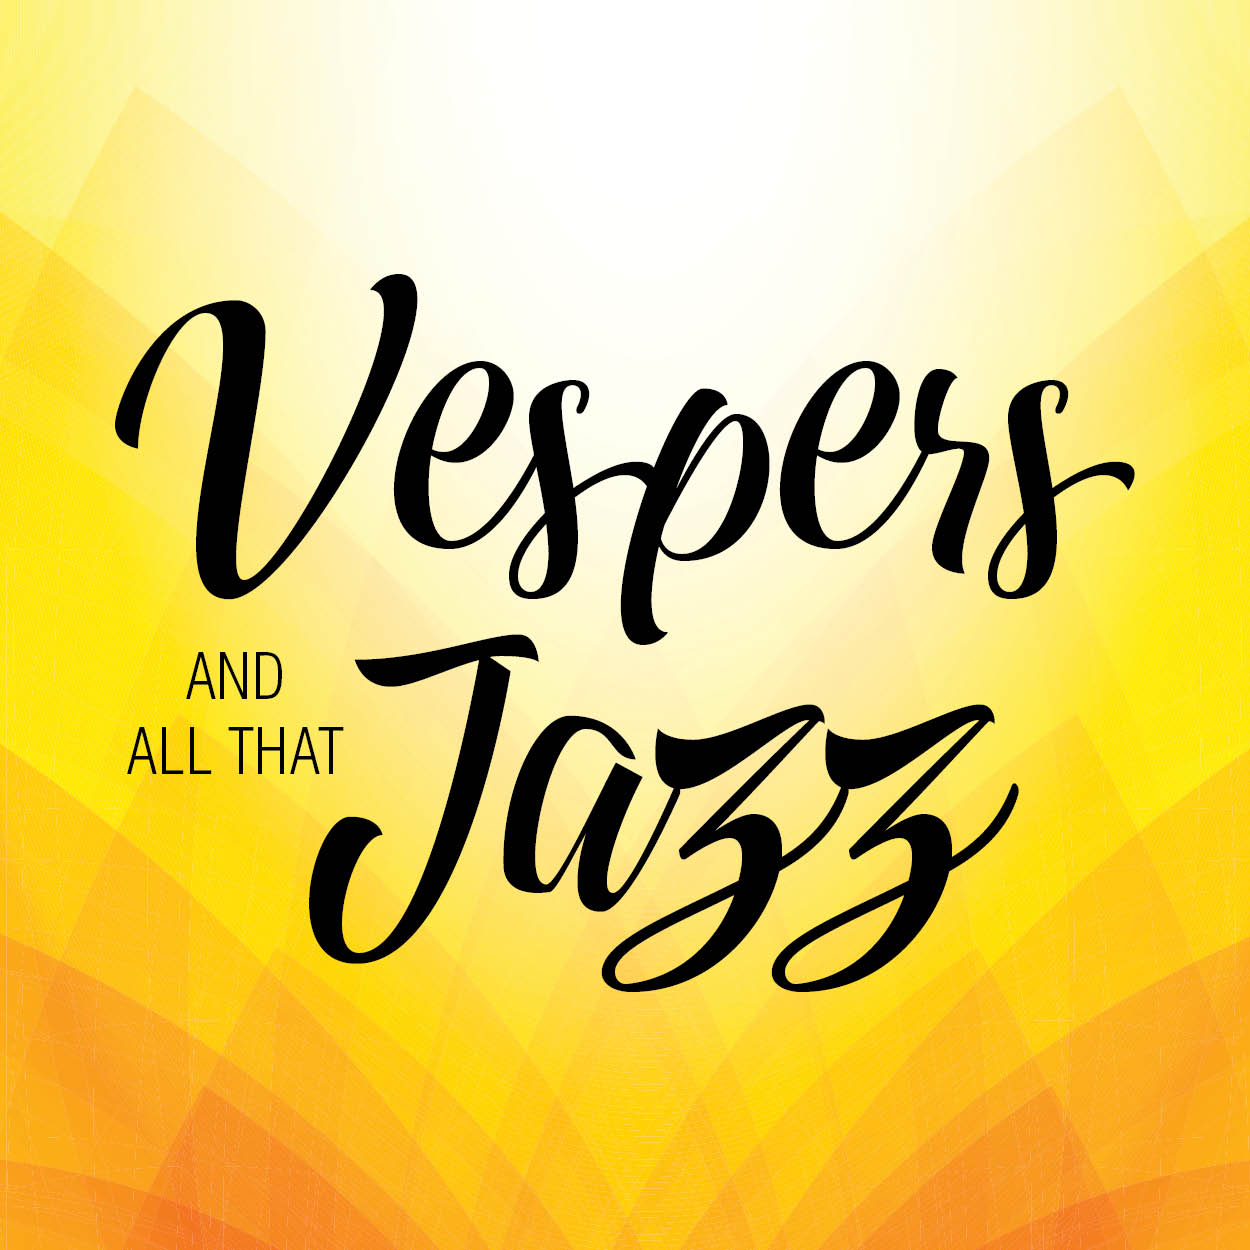 Vespers & All That Jazz graphic with abstract sunrise